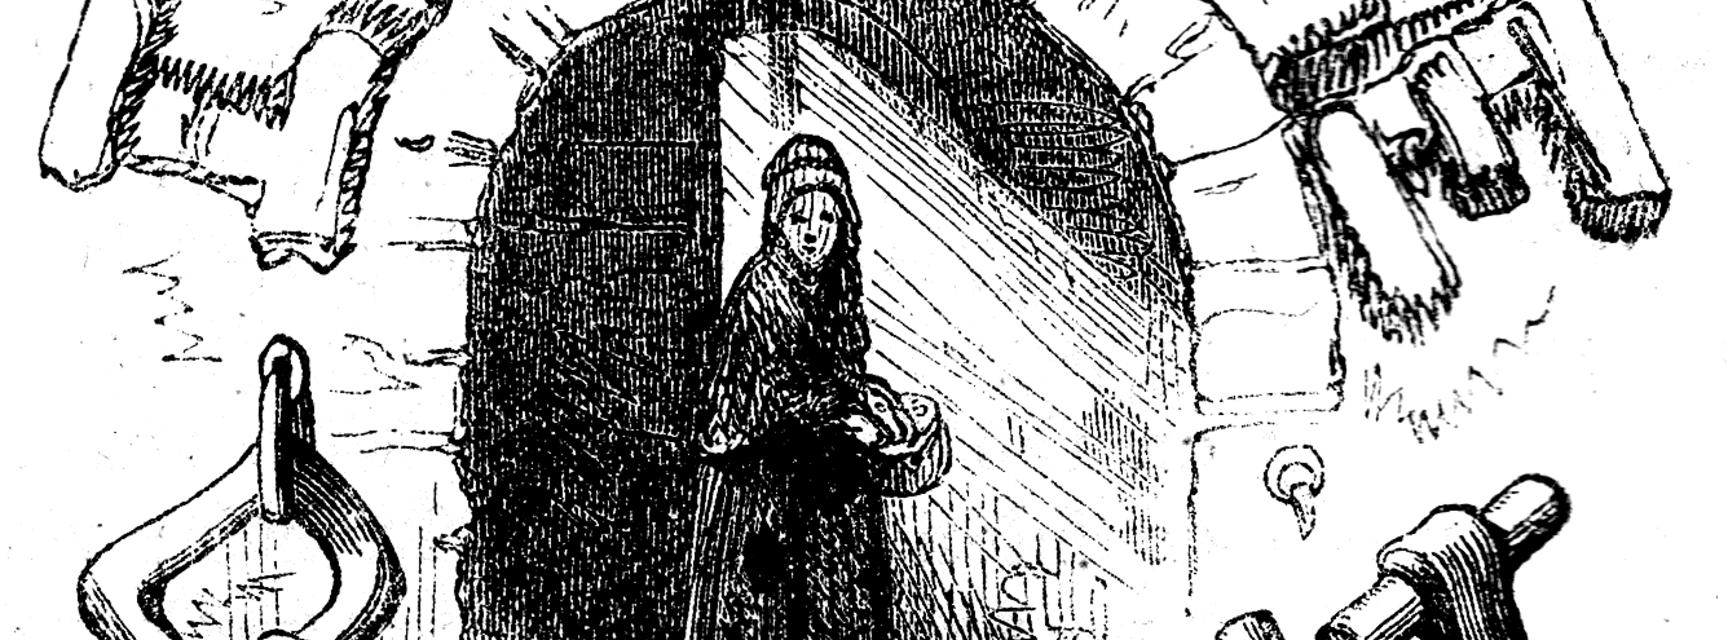 Engraving of Little Dorrit in the entrance to a tunnel